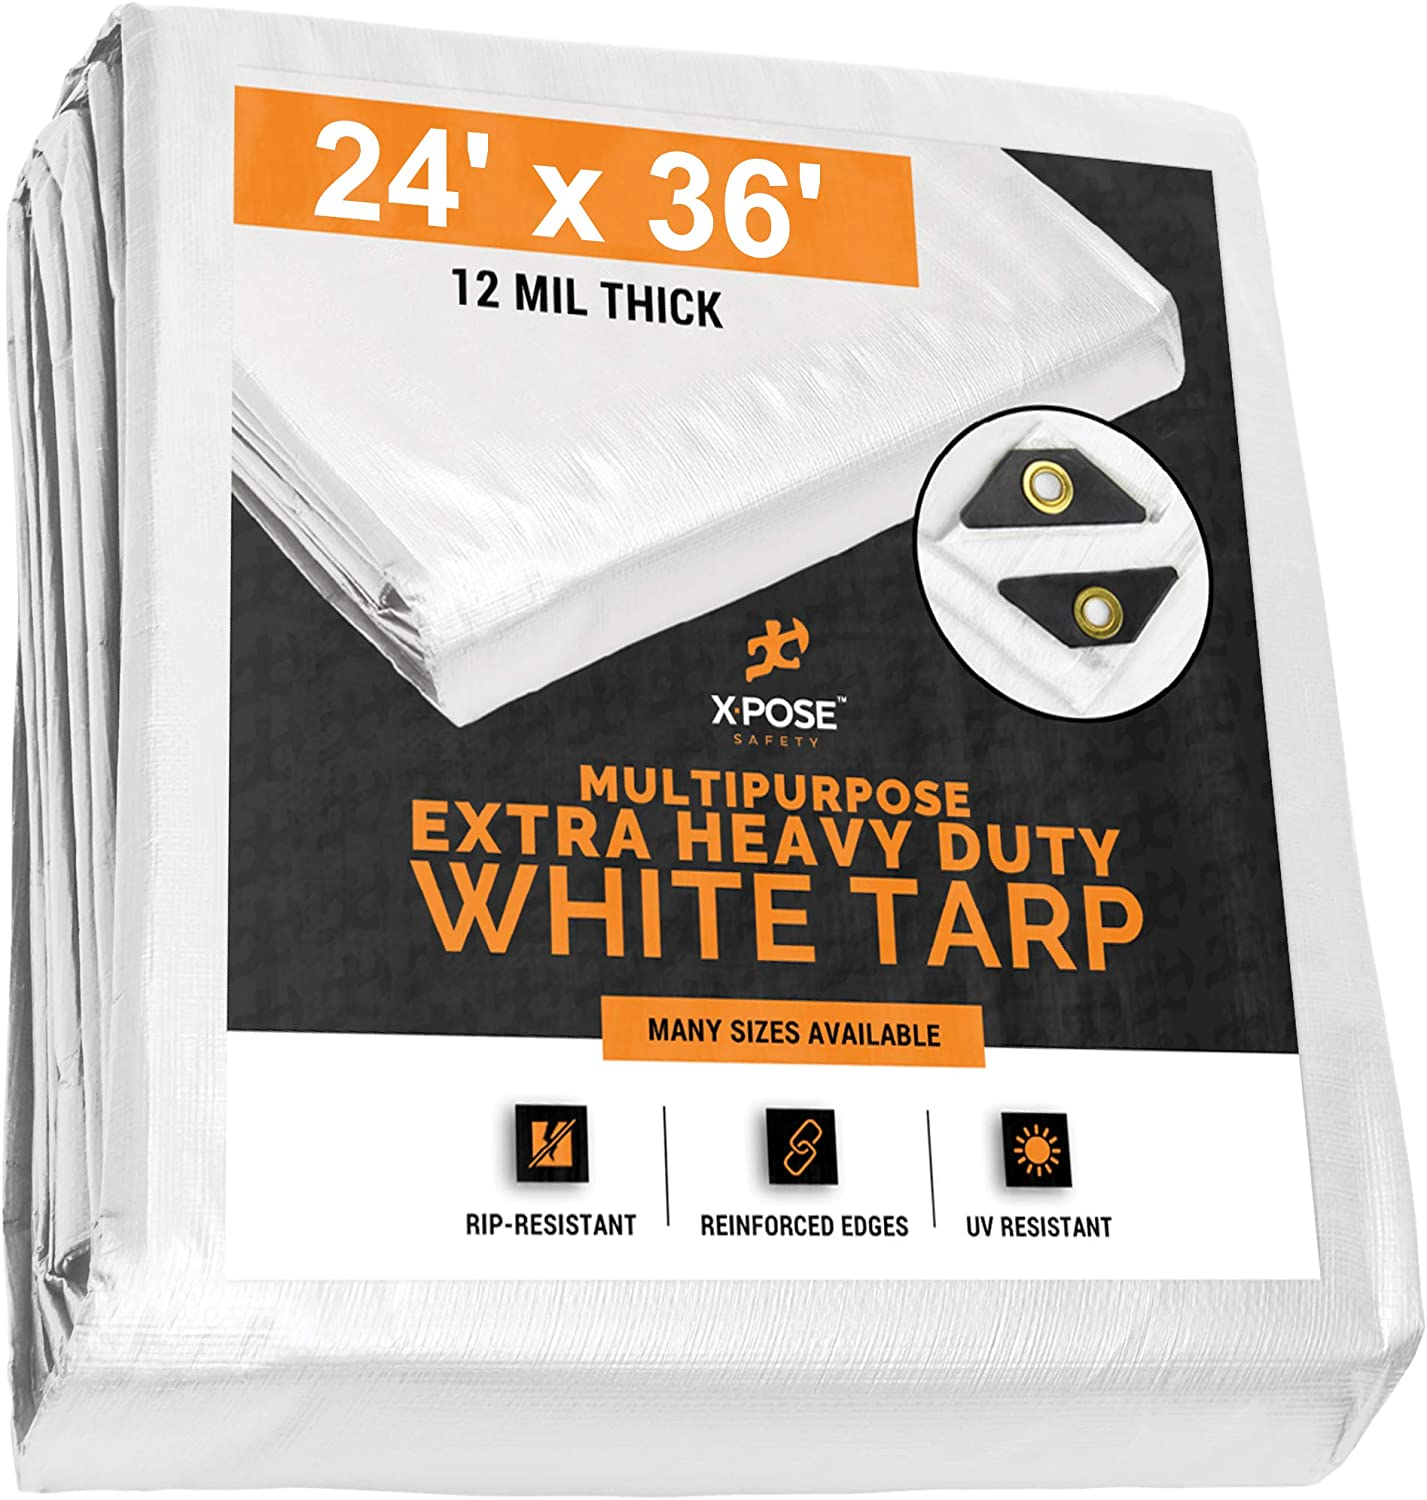 Heavy Duty White Poly Tarp 24' x 36' Multipurpose Protective Cover - Durable, Waterproof, Weather Proof, Rip and Tear Resistant - Extra Thick 12 Mil Polyethylene - by Xpose Safety